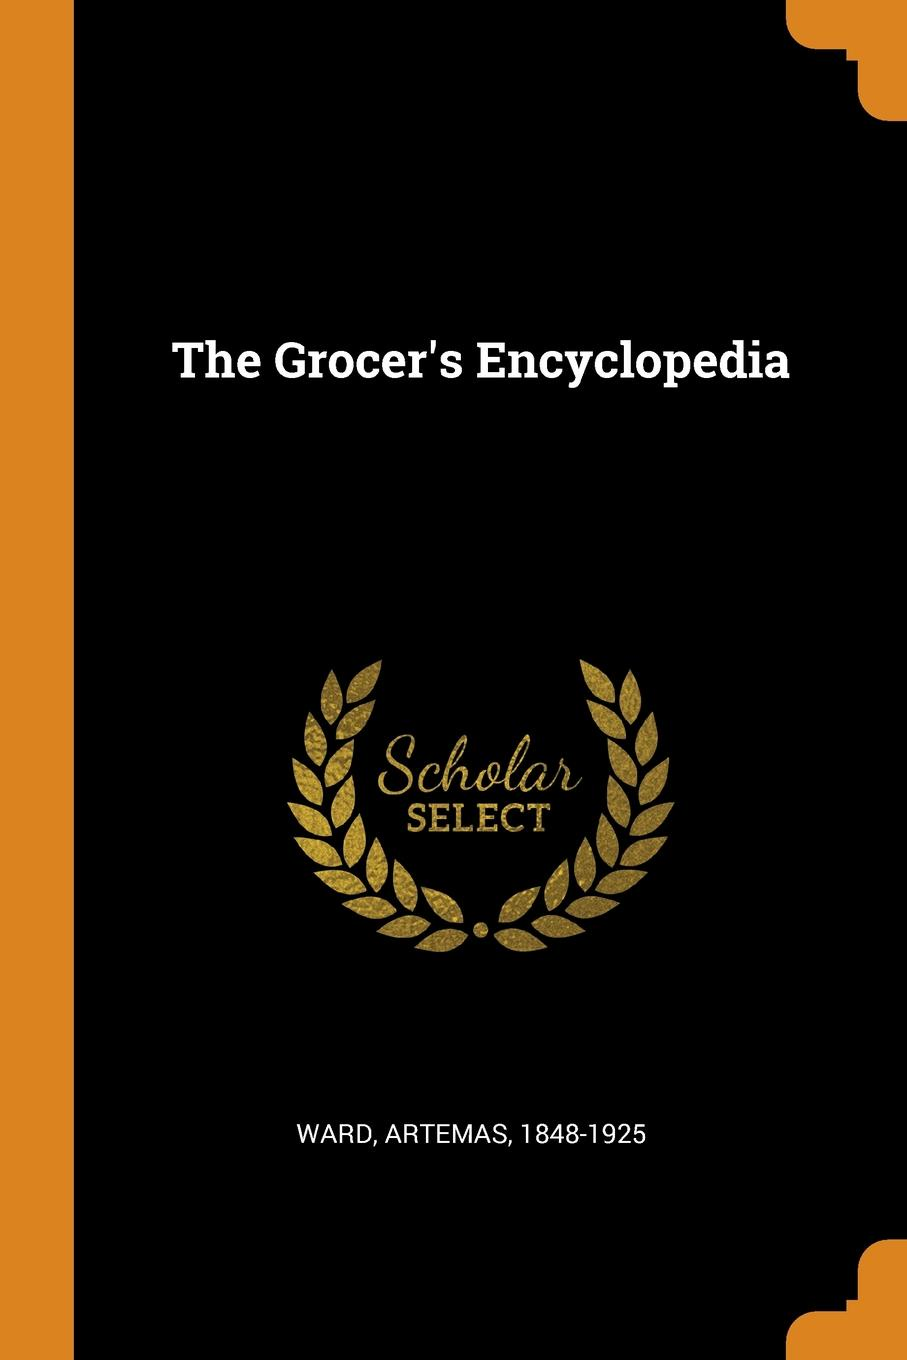 The Grocer.s Encyclopedia